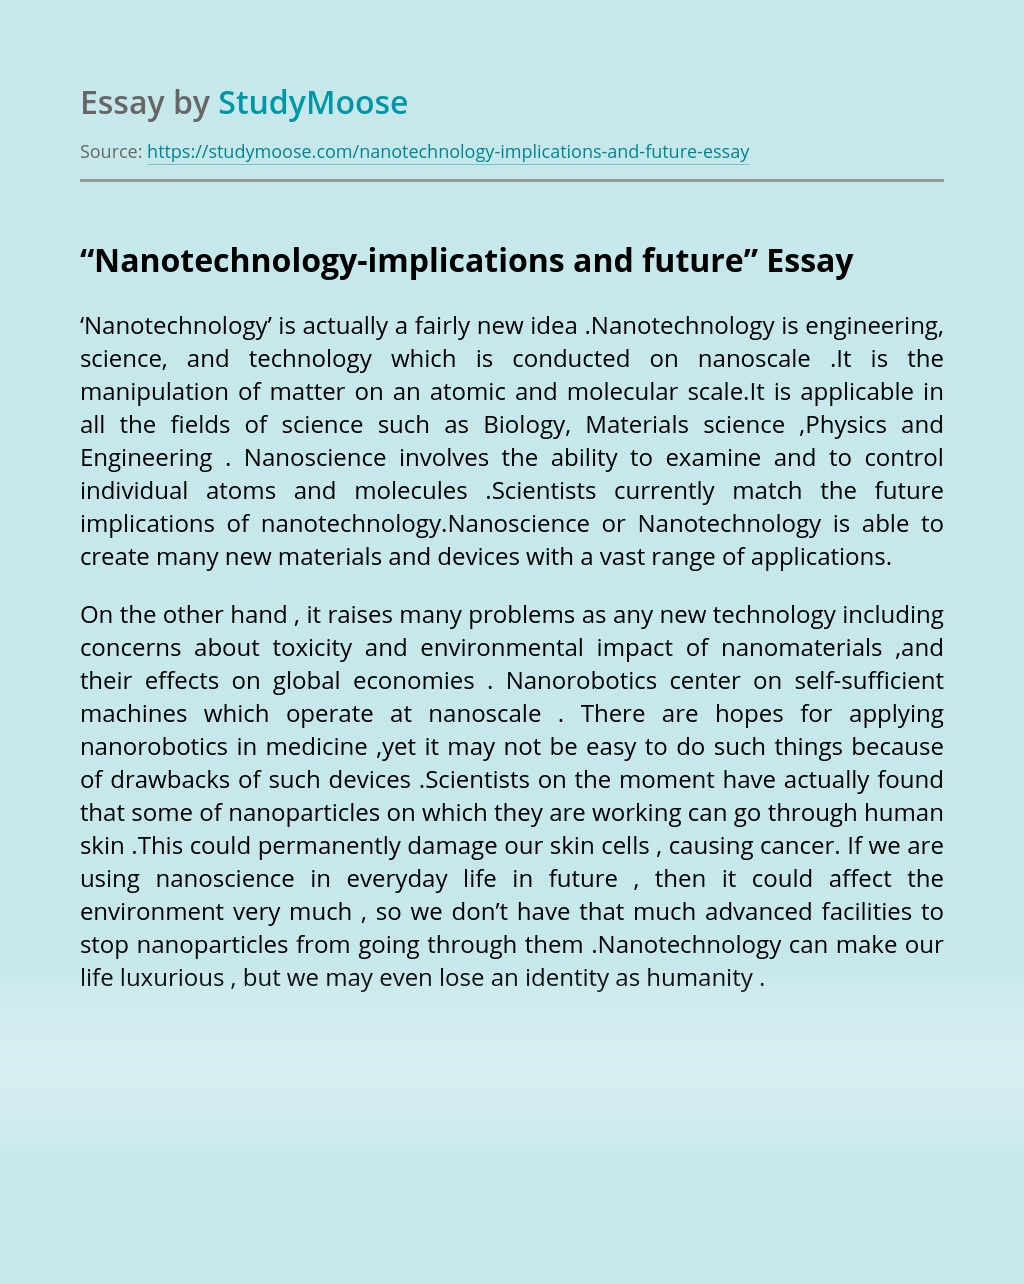 """Nanotechnology-implications and future"""